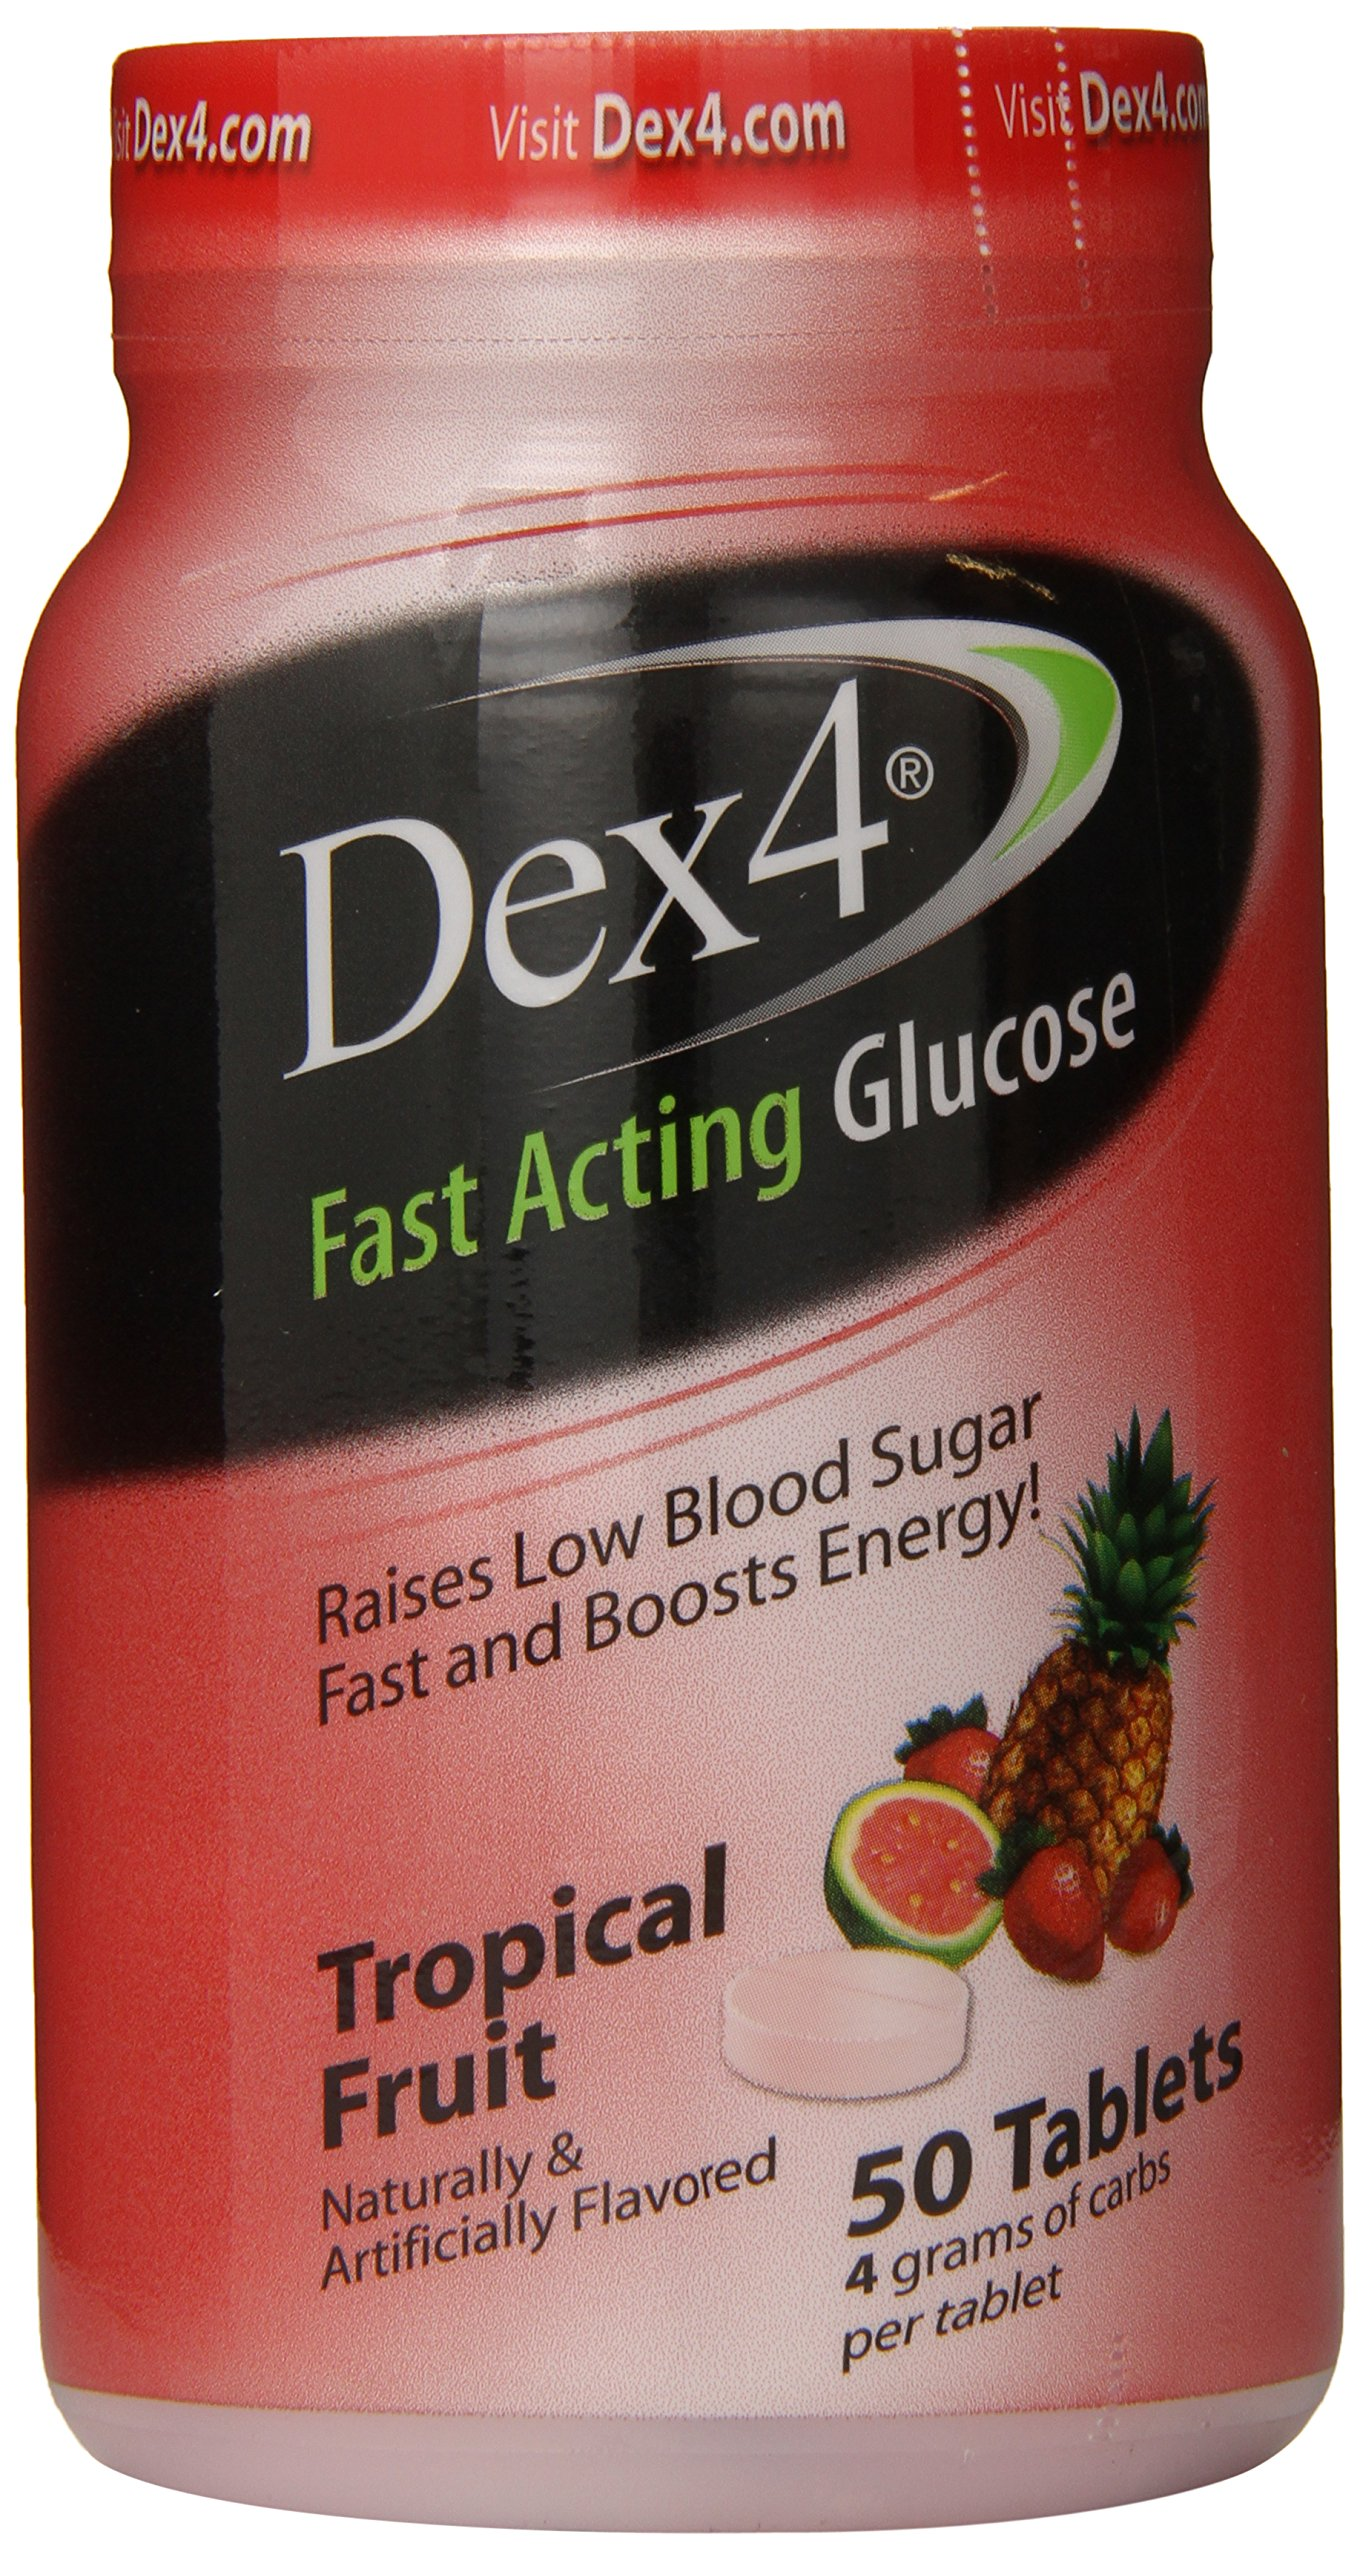 Dex4 Glucose Tablets, Tropical Fruit, 50 Count by Unknown